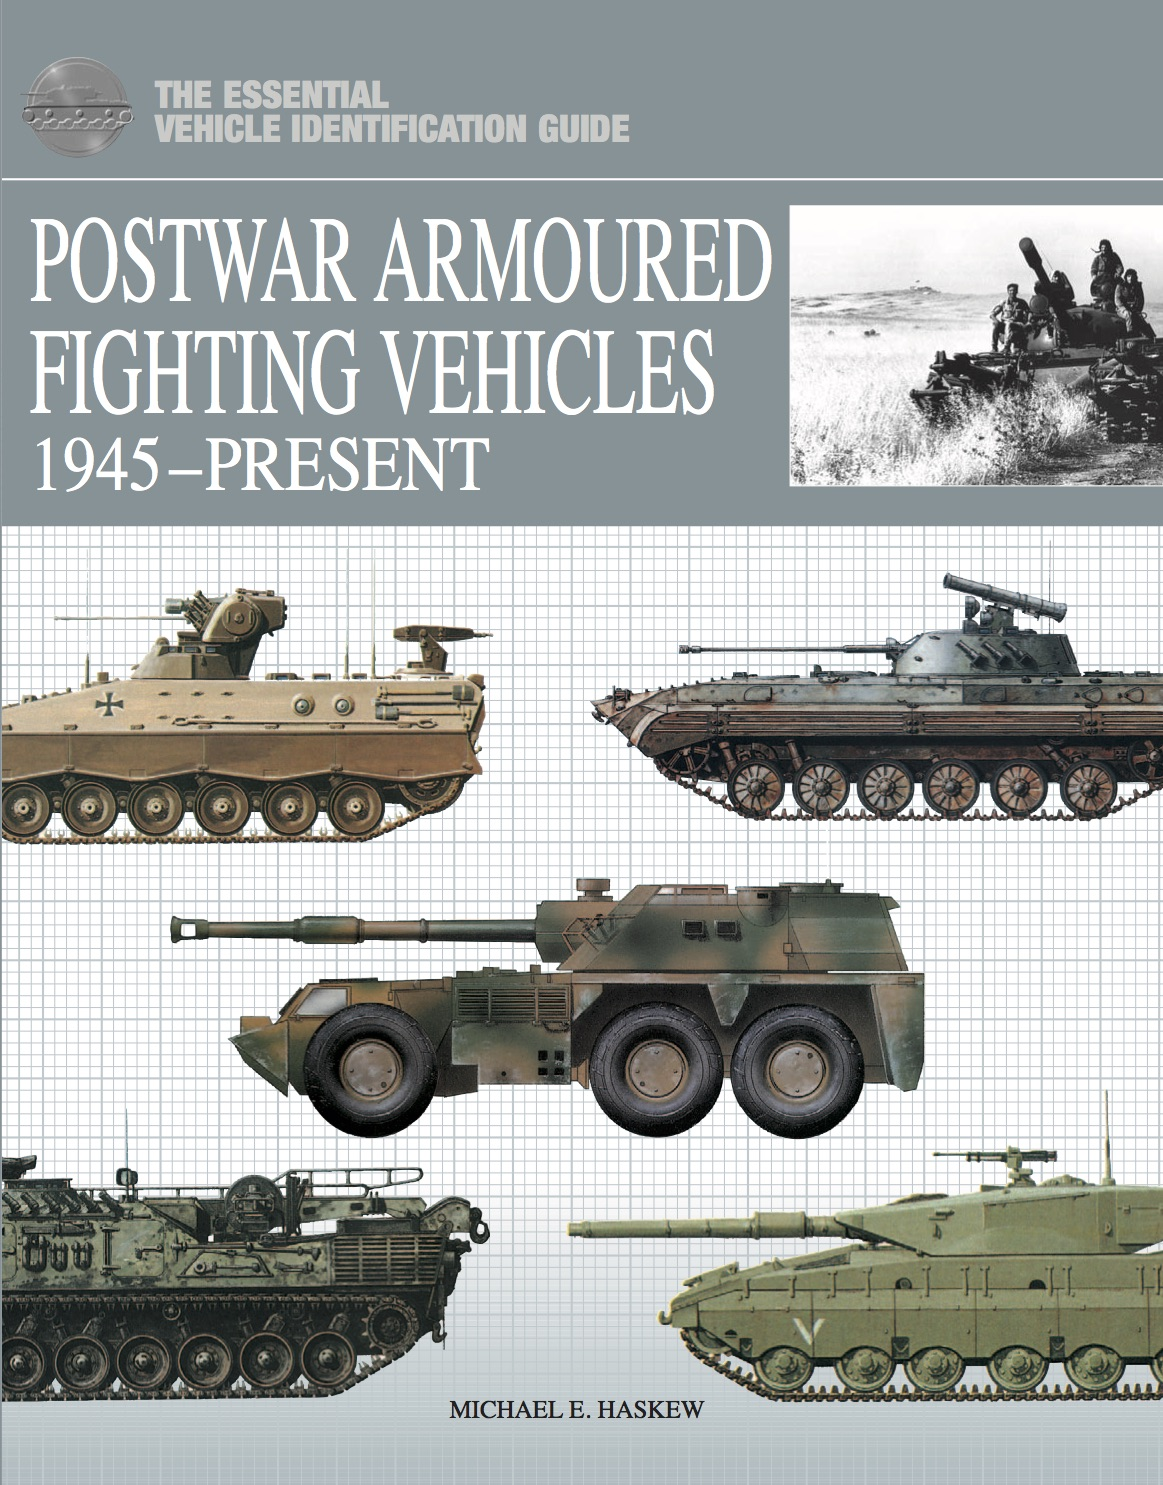 Postwar Armoured Fighting Vehicles: The Essential Vehicle Identification Guide